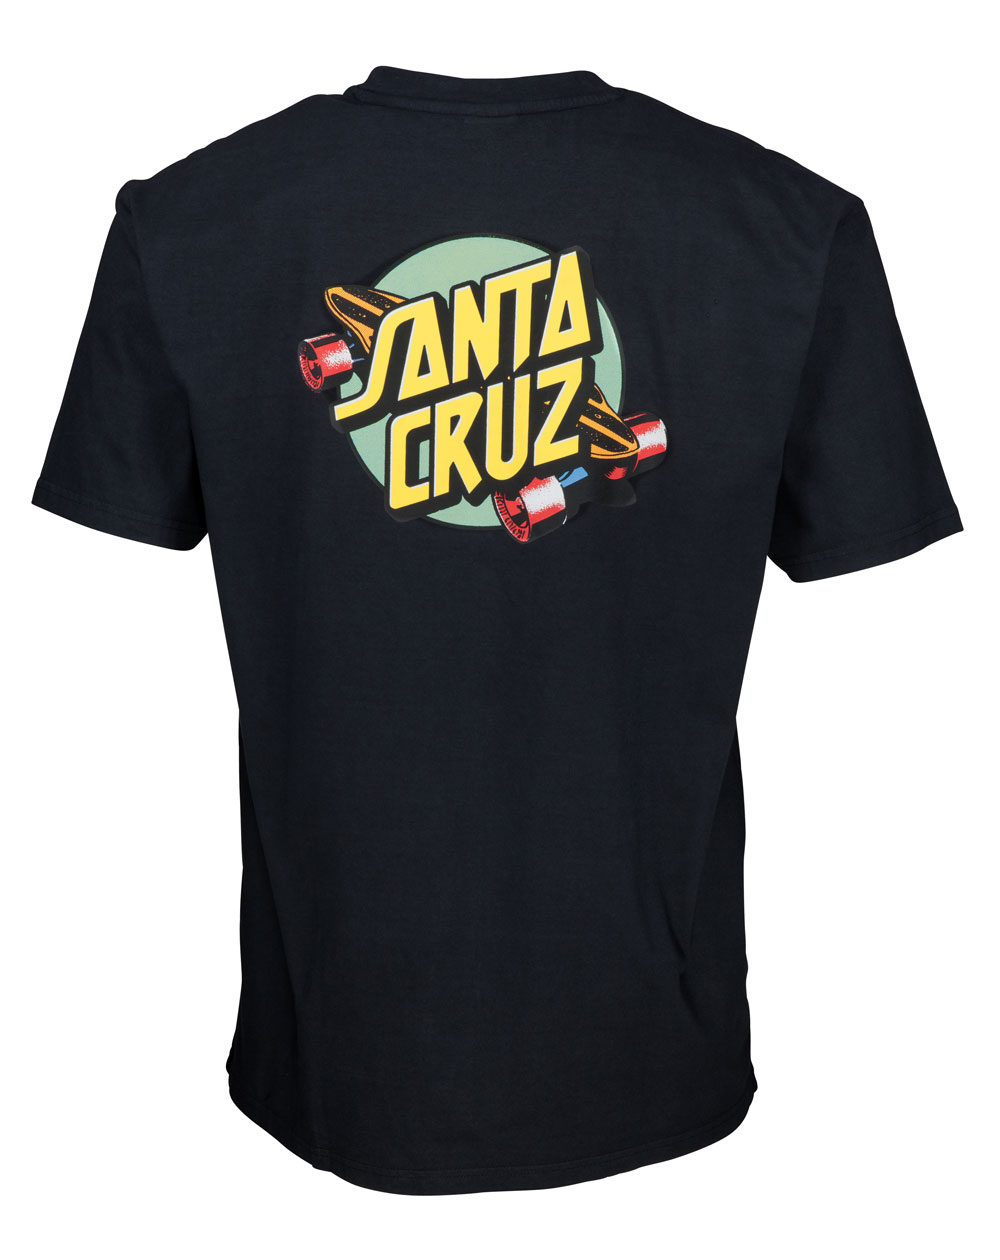 Santa Cruz Men's T-Shirt Summer of 76 Black